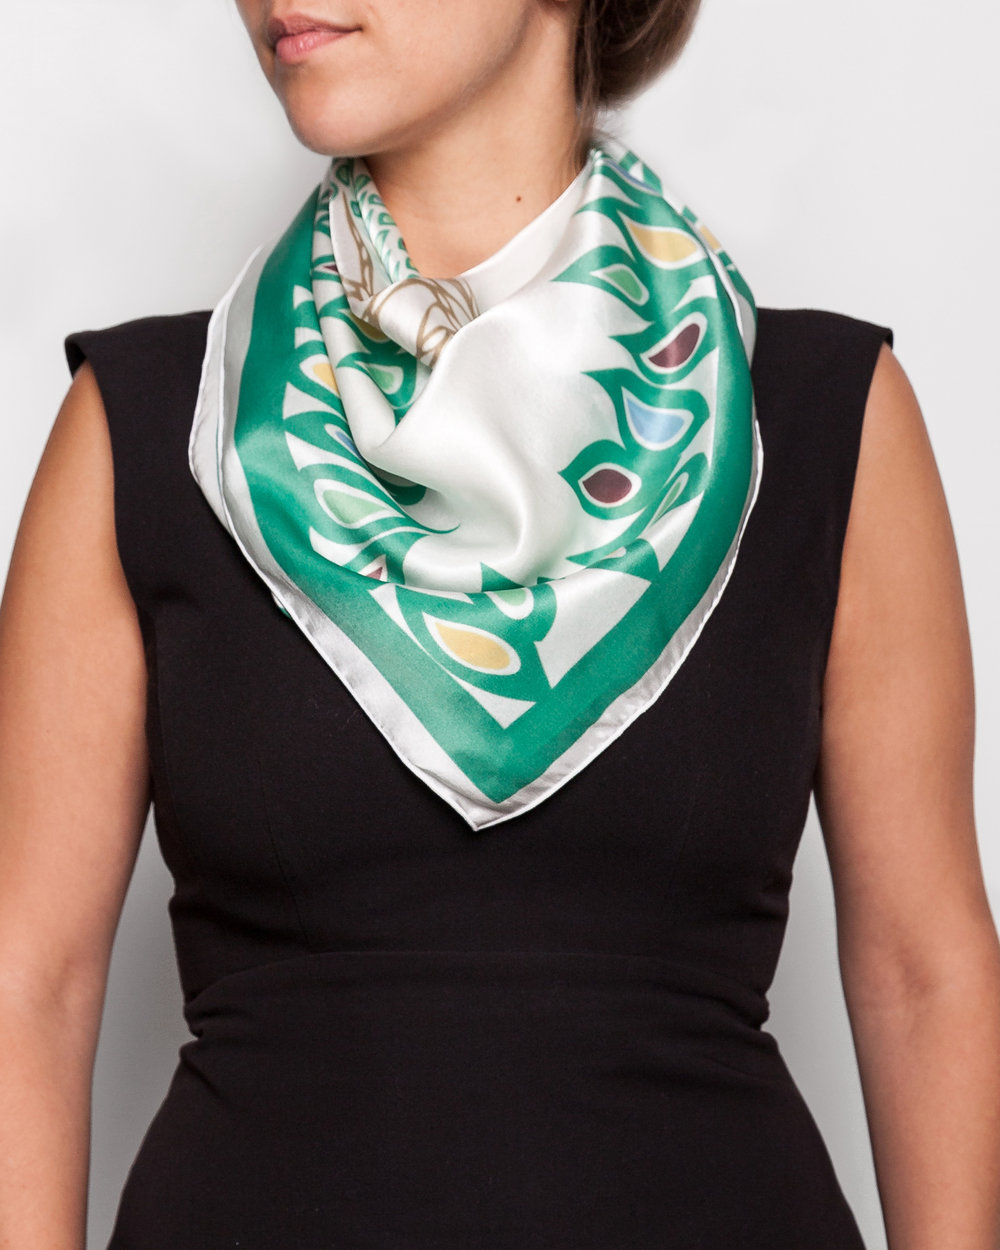 Patrick Hunter Tree of Life Scarf $75 eBay.ca copy.jpg